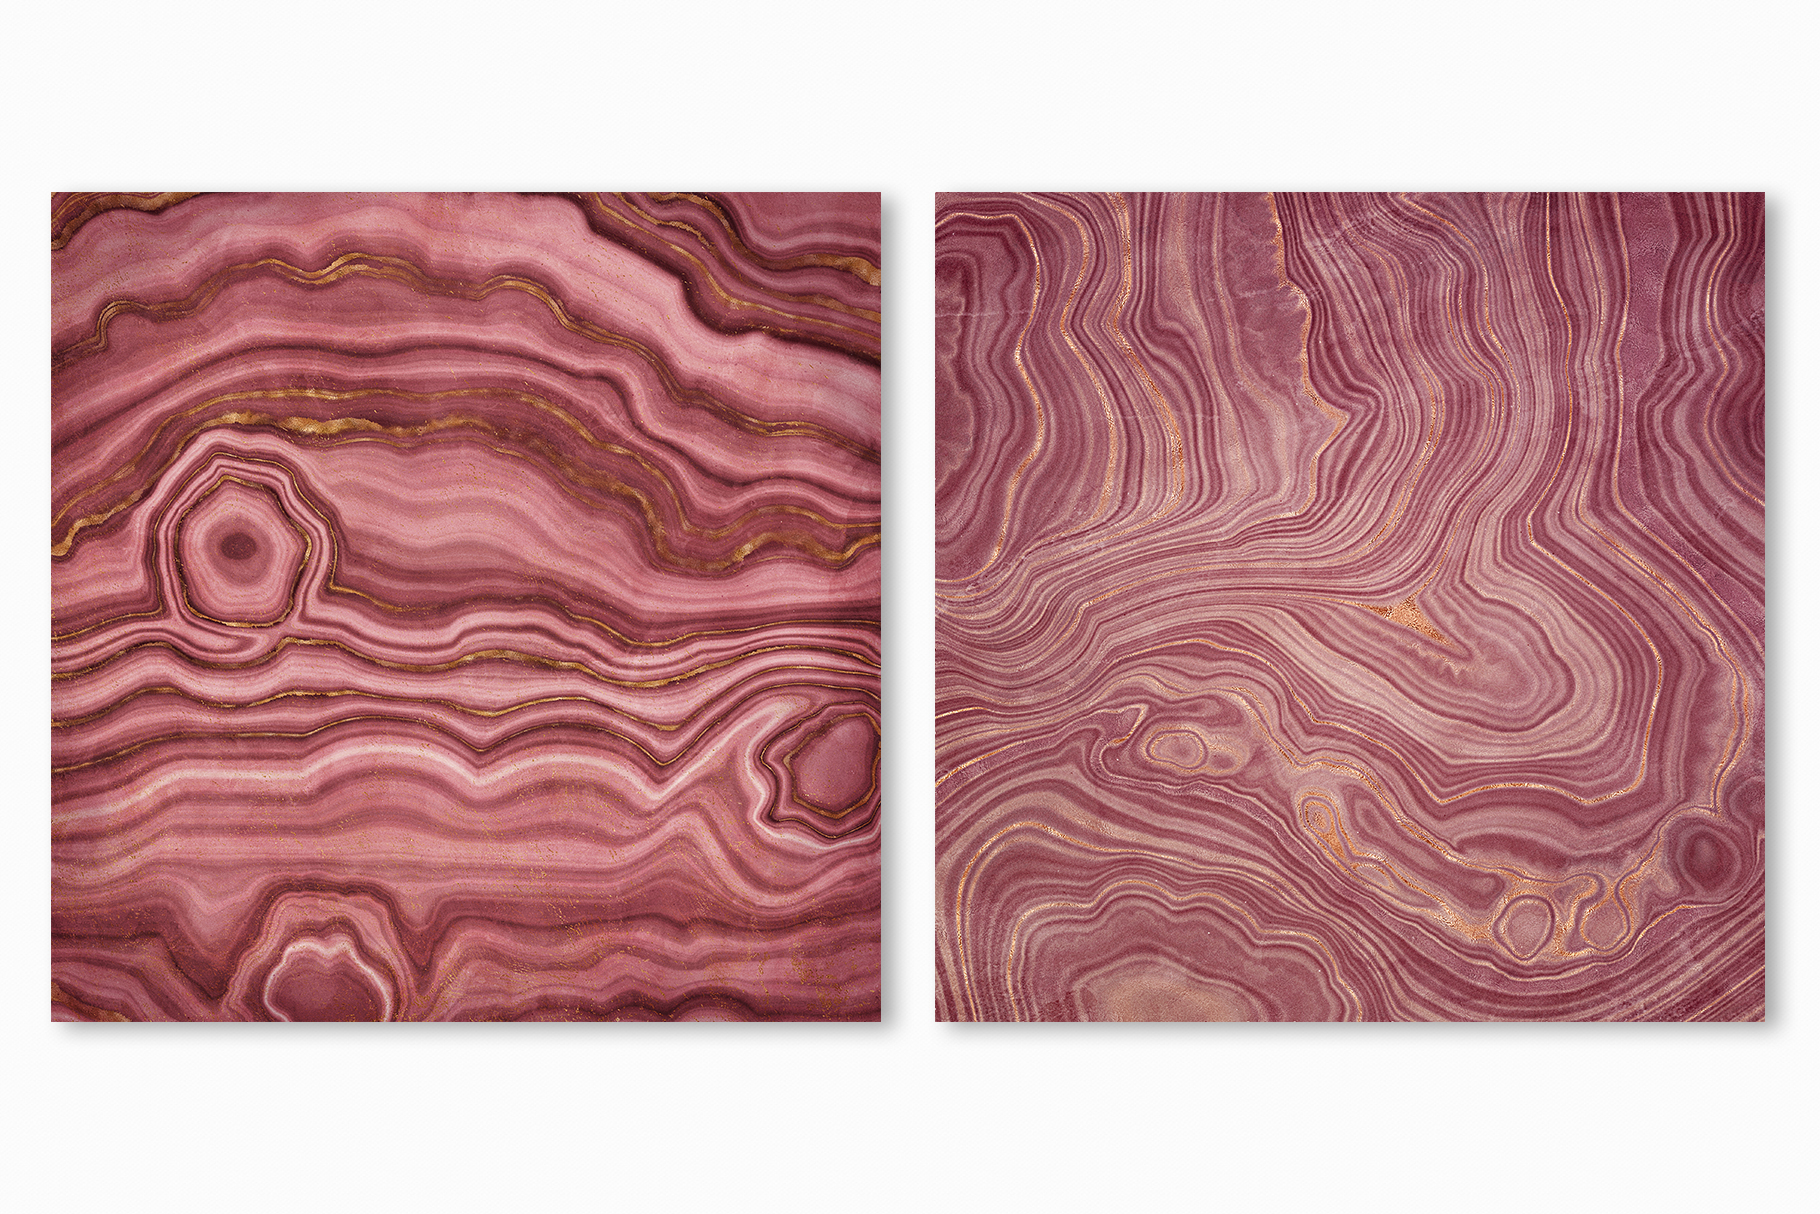 Pink Agate Illustrations, Textures & Patterns example image 9